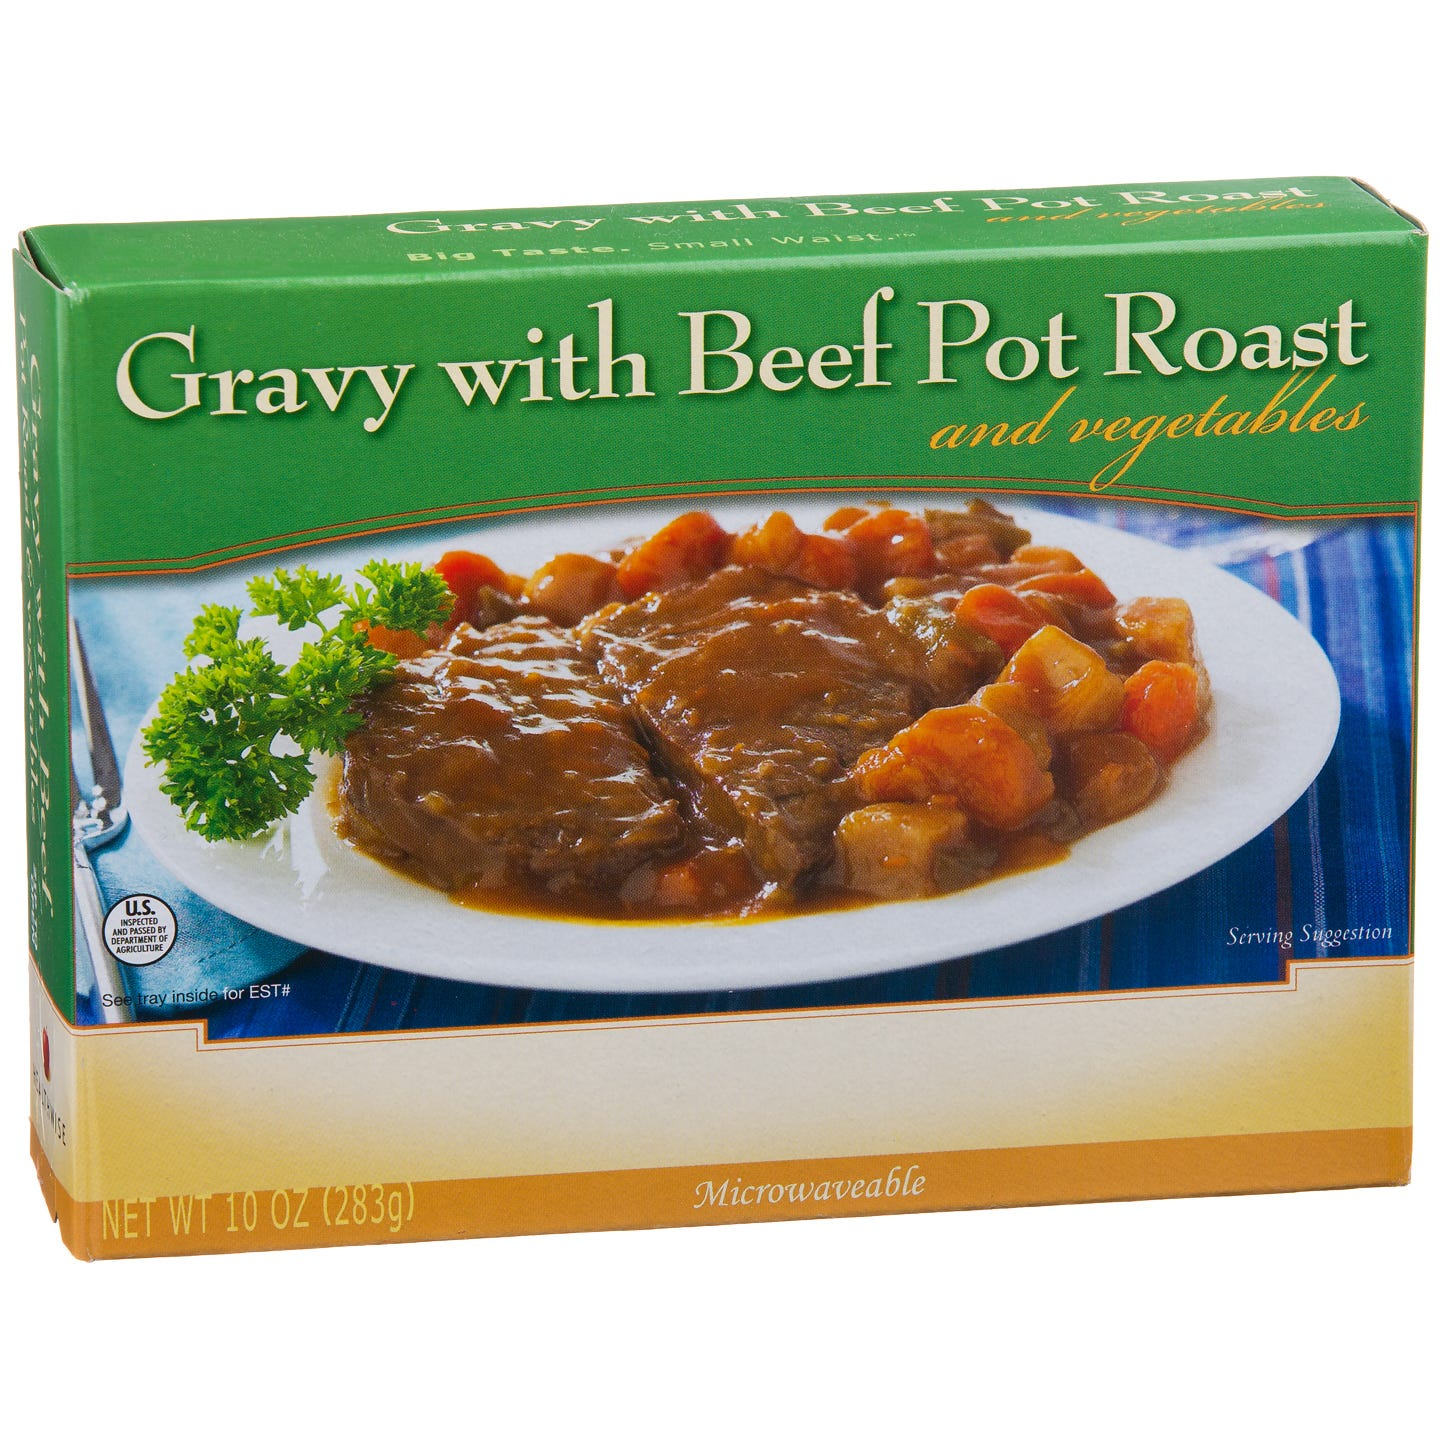 Low Calorie Meal Gravy With Beef Pot Roast 8 Oz  BariWise